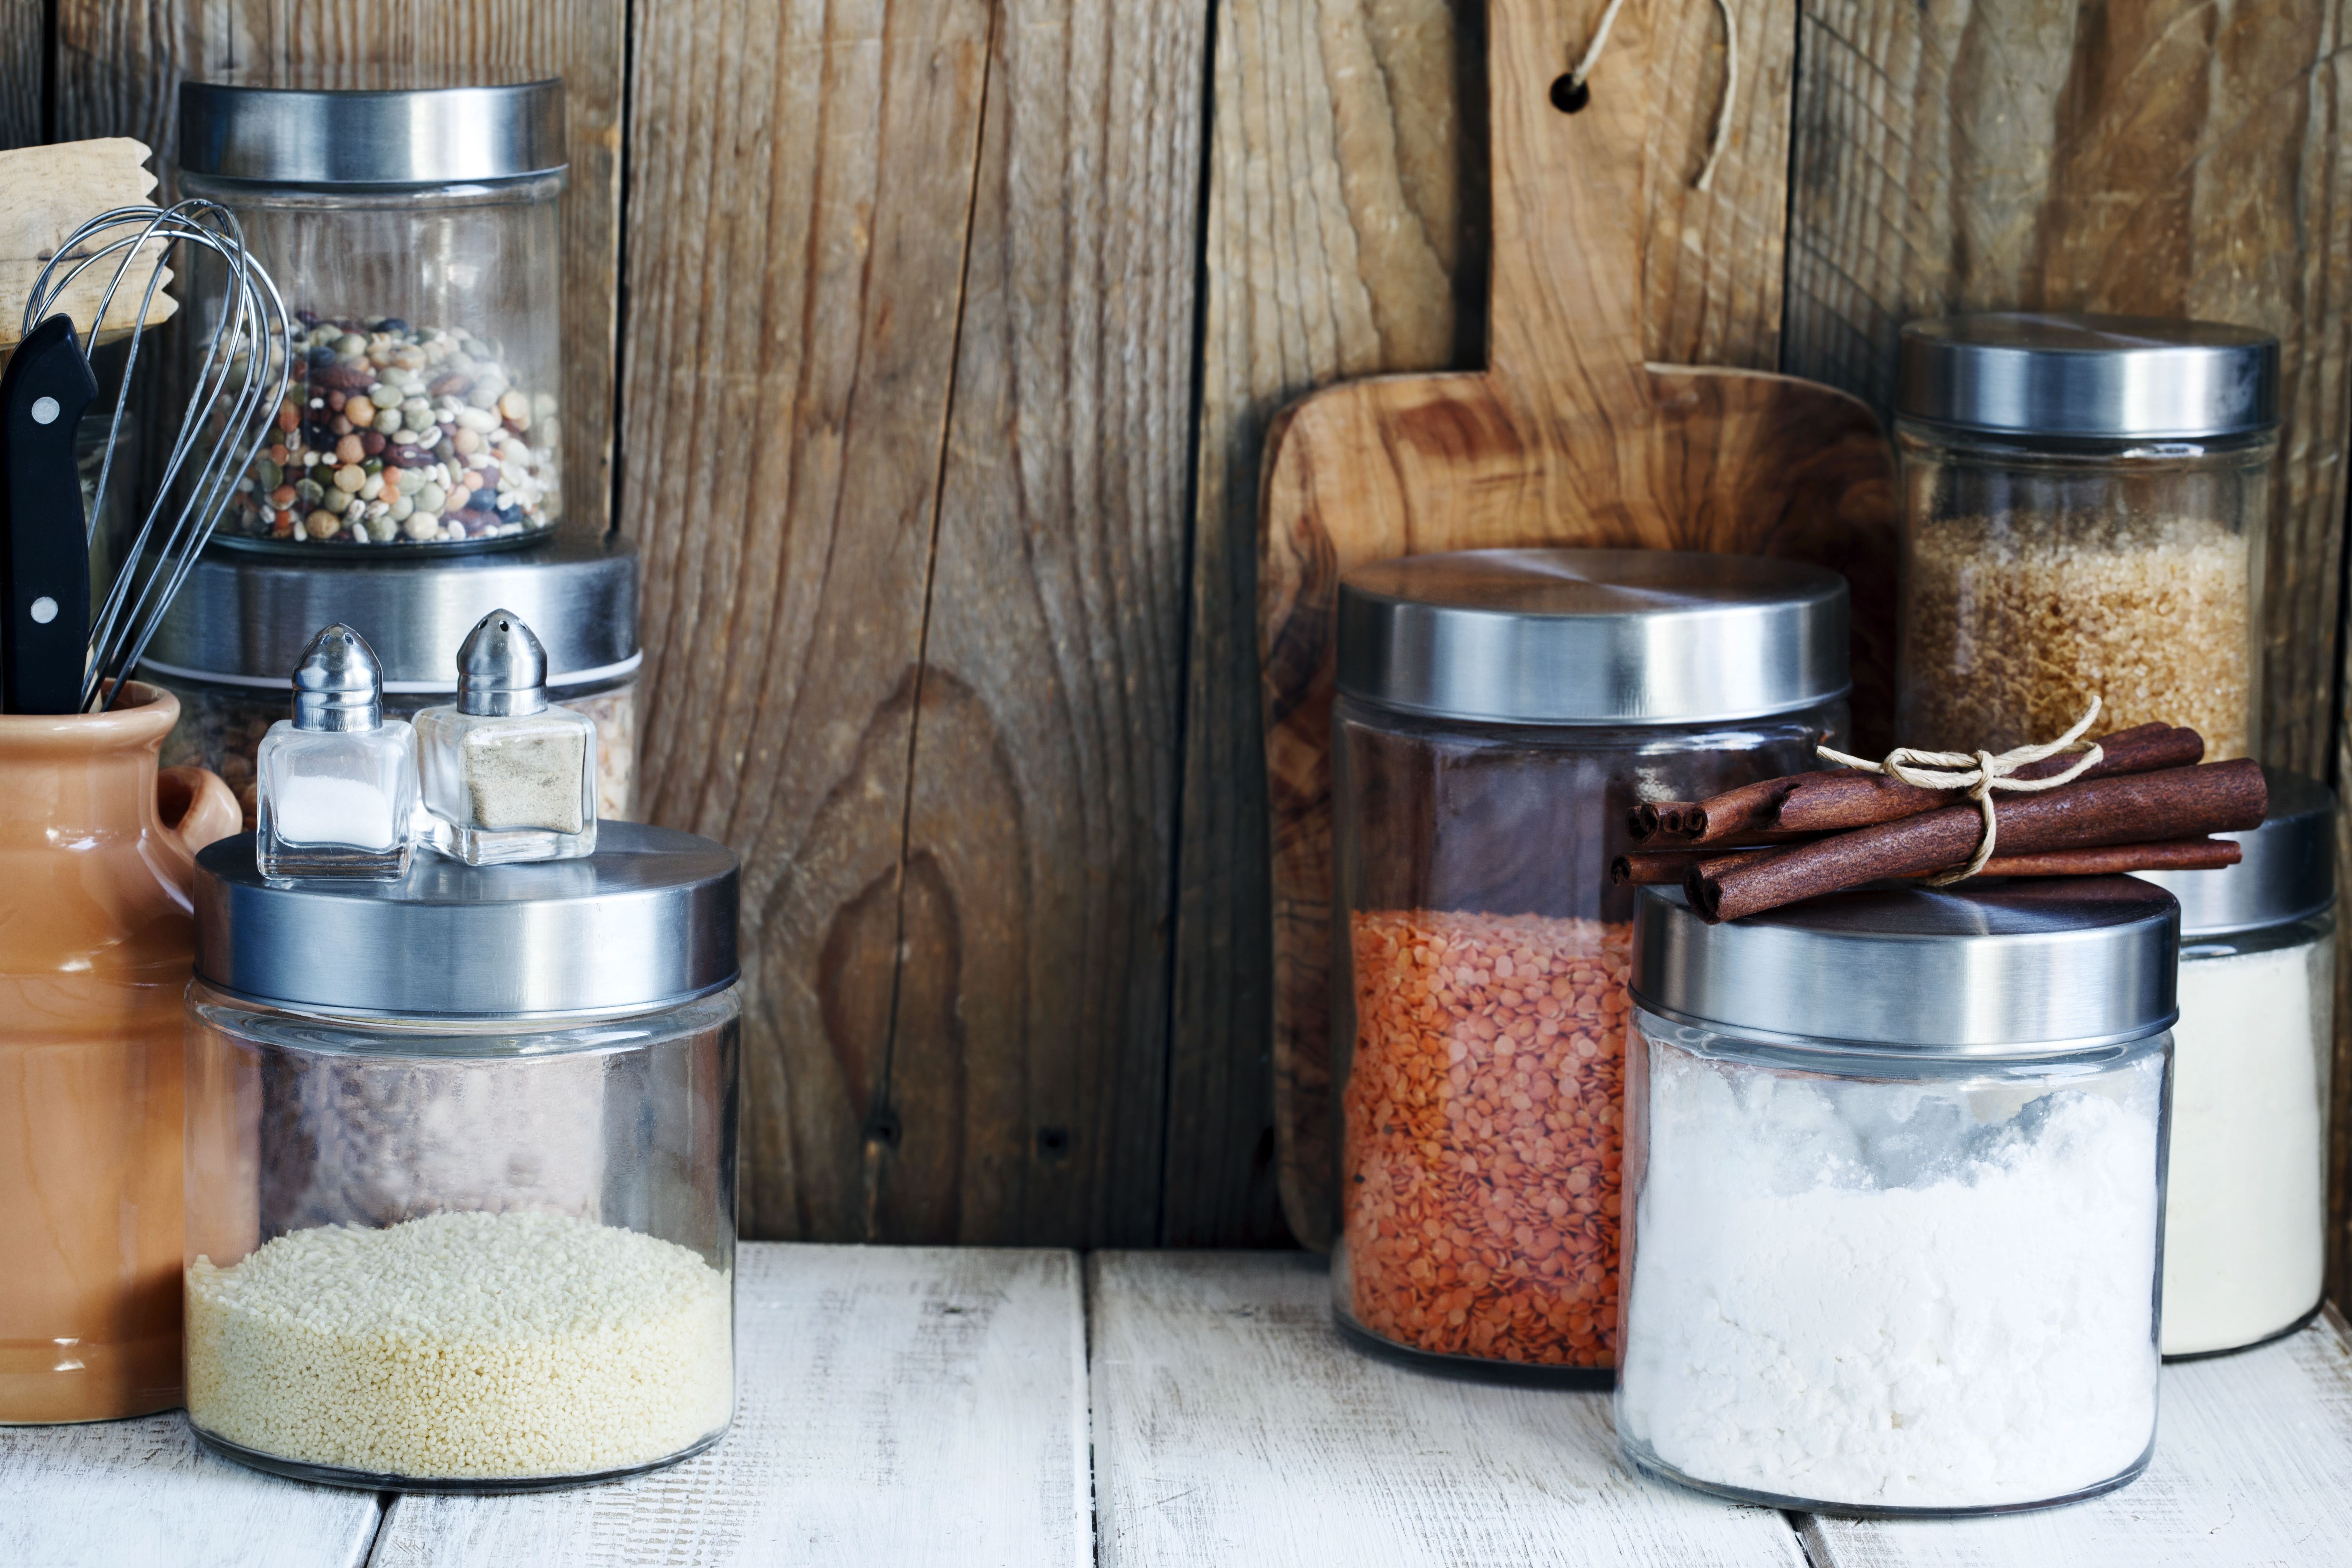 photo of Arrangement of dry food products and kitchen utensils in the kitchen. Home kitchen rustic still life